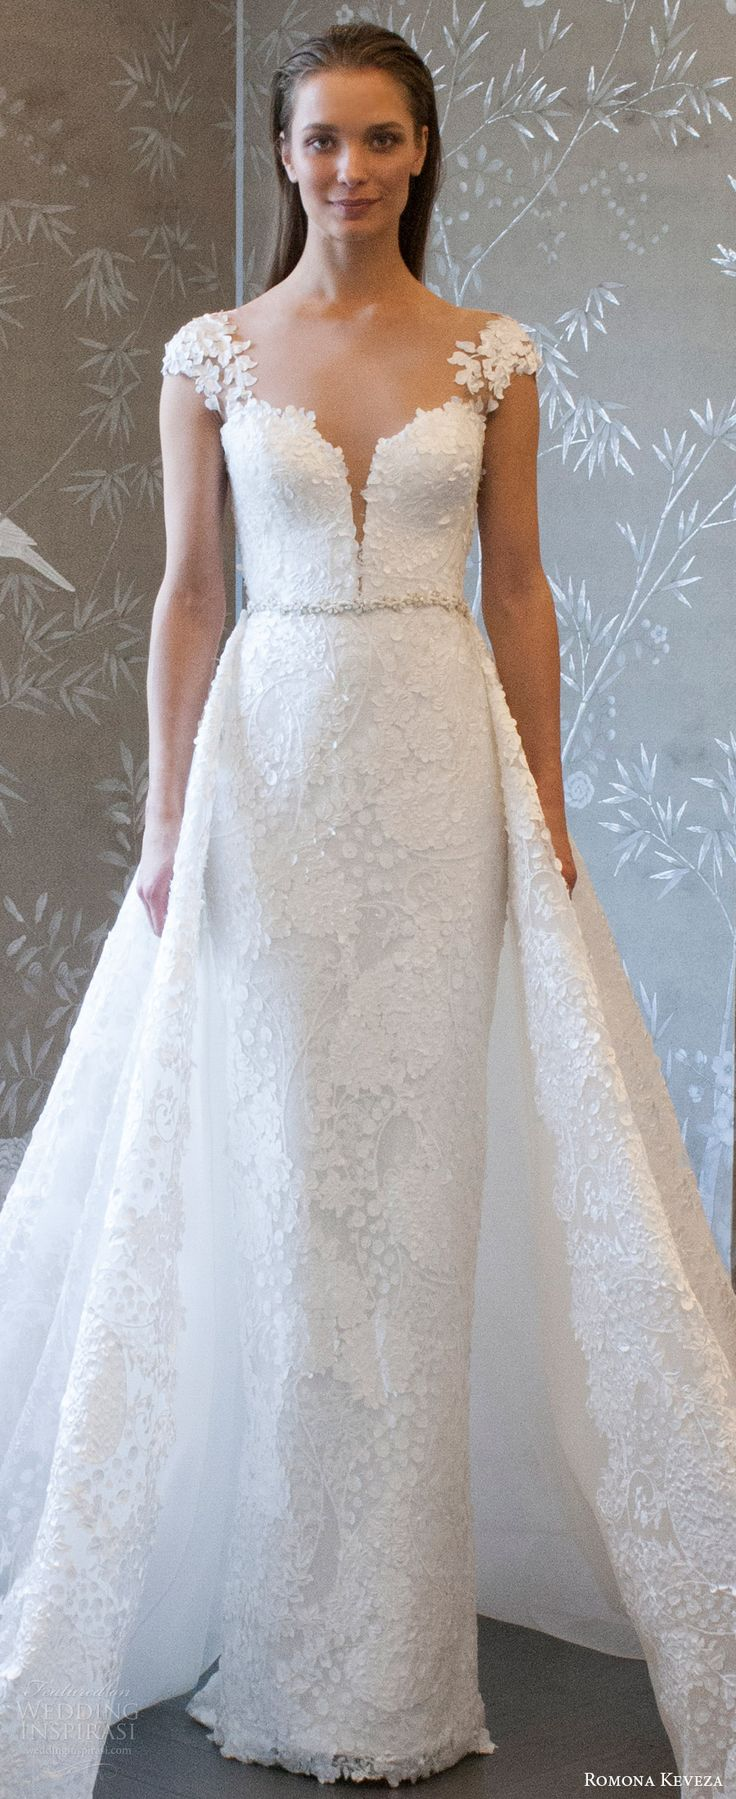 25 cute romantic wedding dresses ideas on pinterest romantic 25 cute romantic wedding dresses ideas on pinterest romantic wedding gowns berta bridal 2018 and spaghetti strap wedding dress ombrellifo Image collections